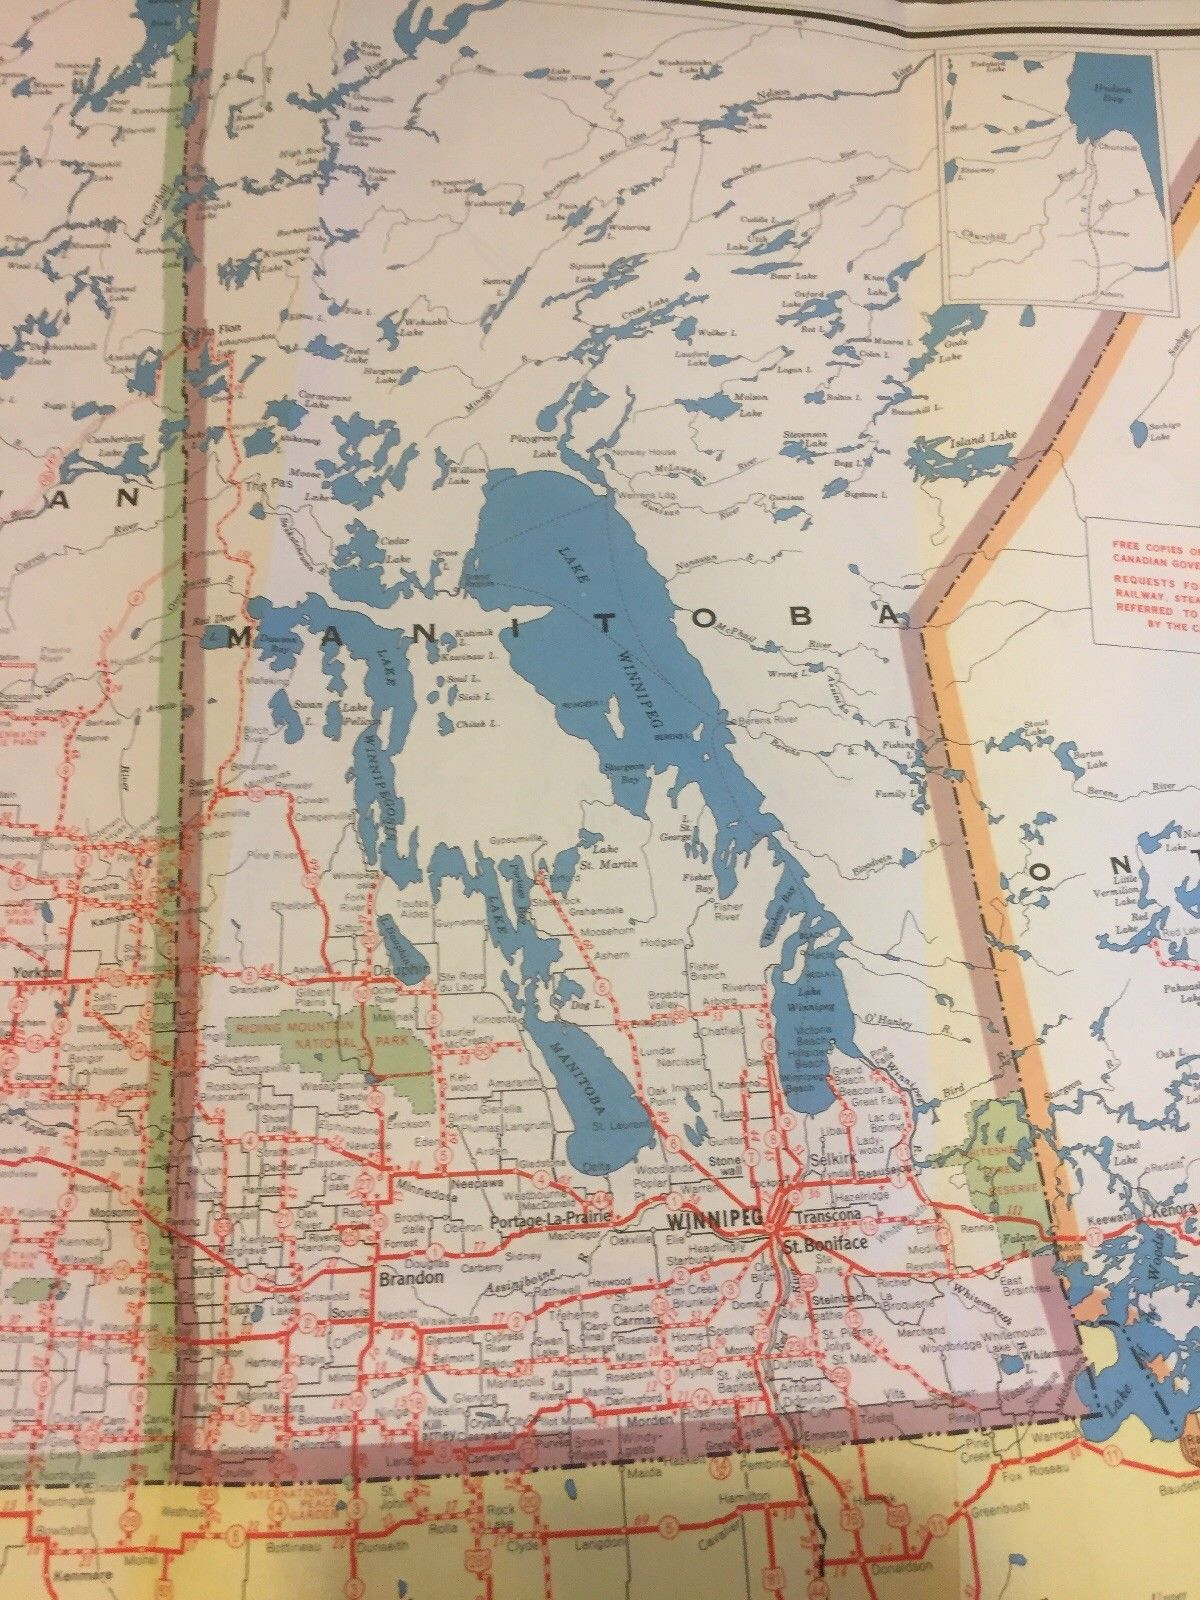 Highway Map Of Canada And Northern United States Canadian Travel Bureau 1955